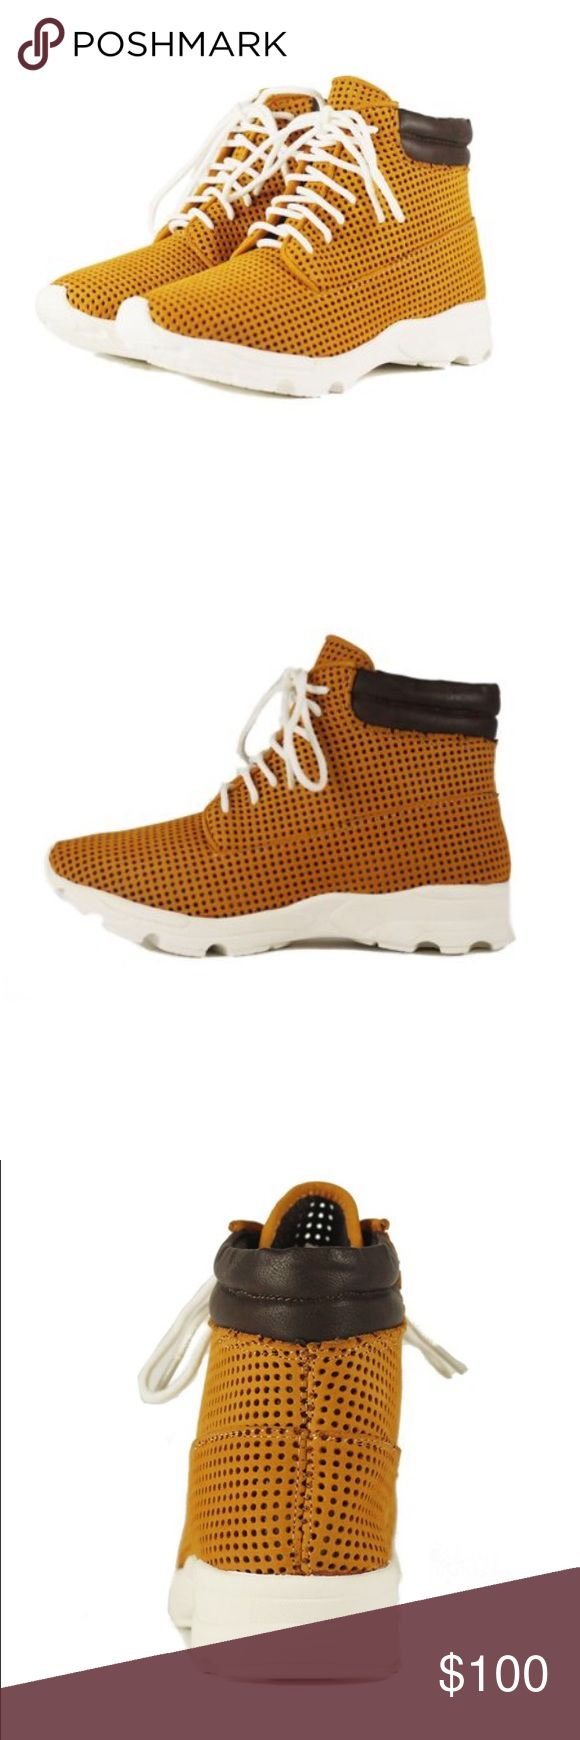 Jeffrey Campbell Tiveron tans and white shoes. Never worn. Punched nubuck shoes. They are very soft and comfortable. I have long toes so it fits exact. I like my shoes to have room. Jeffrey Campbell Shoes Sneakers